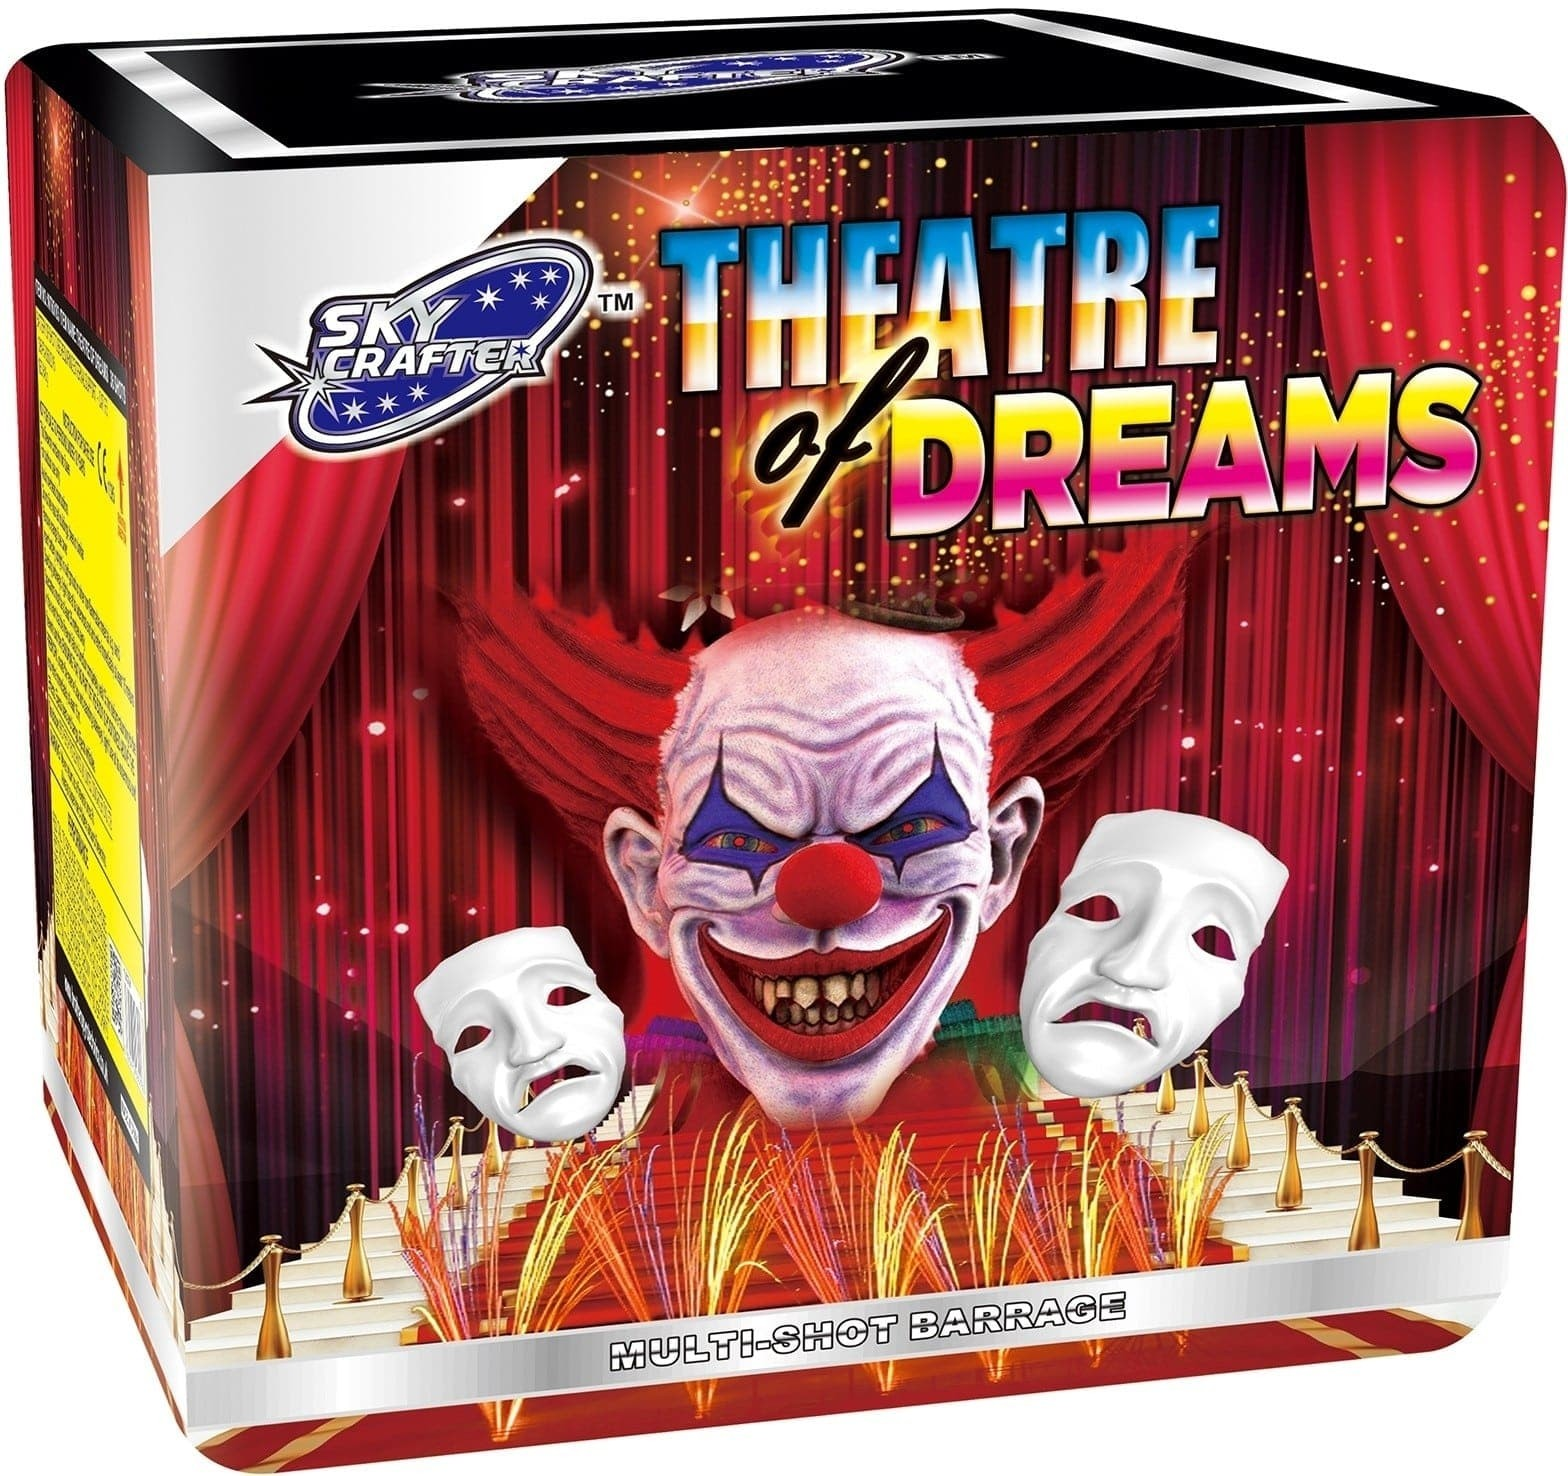 Theatre of Dreams By Skycrafter Fireworks